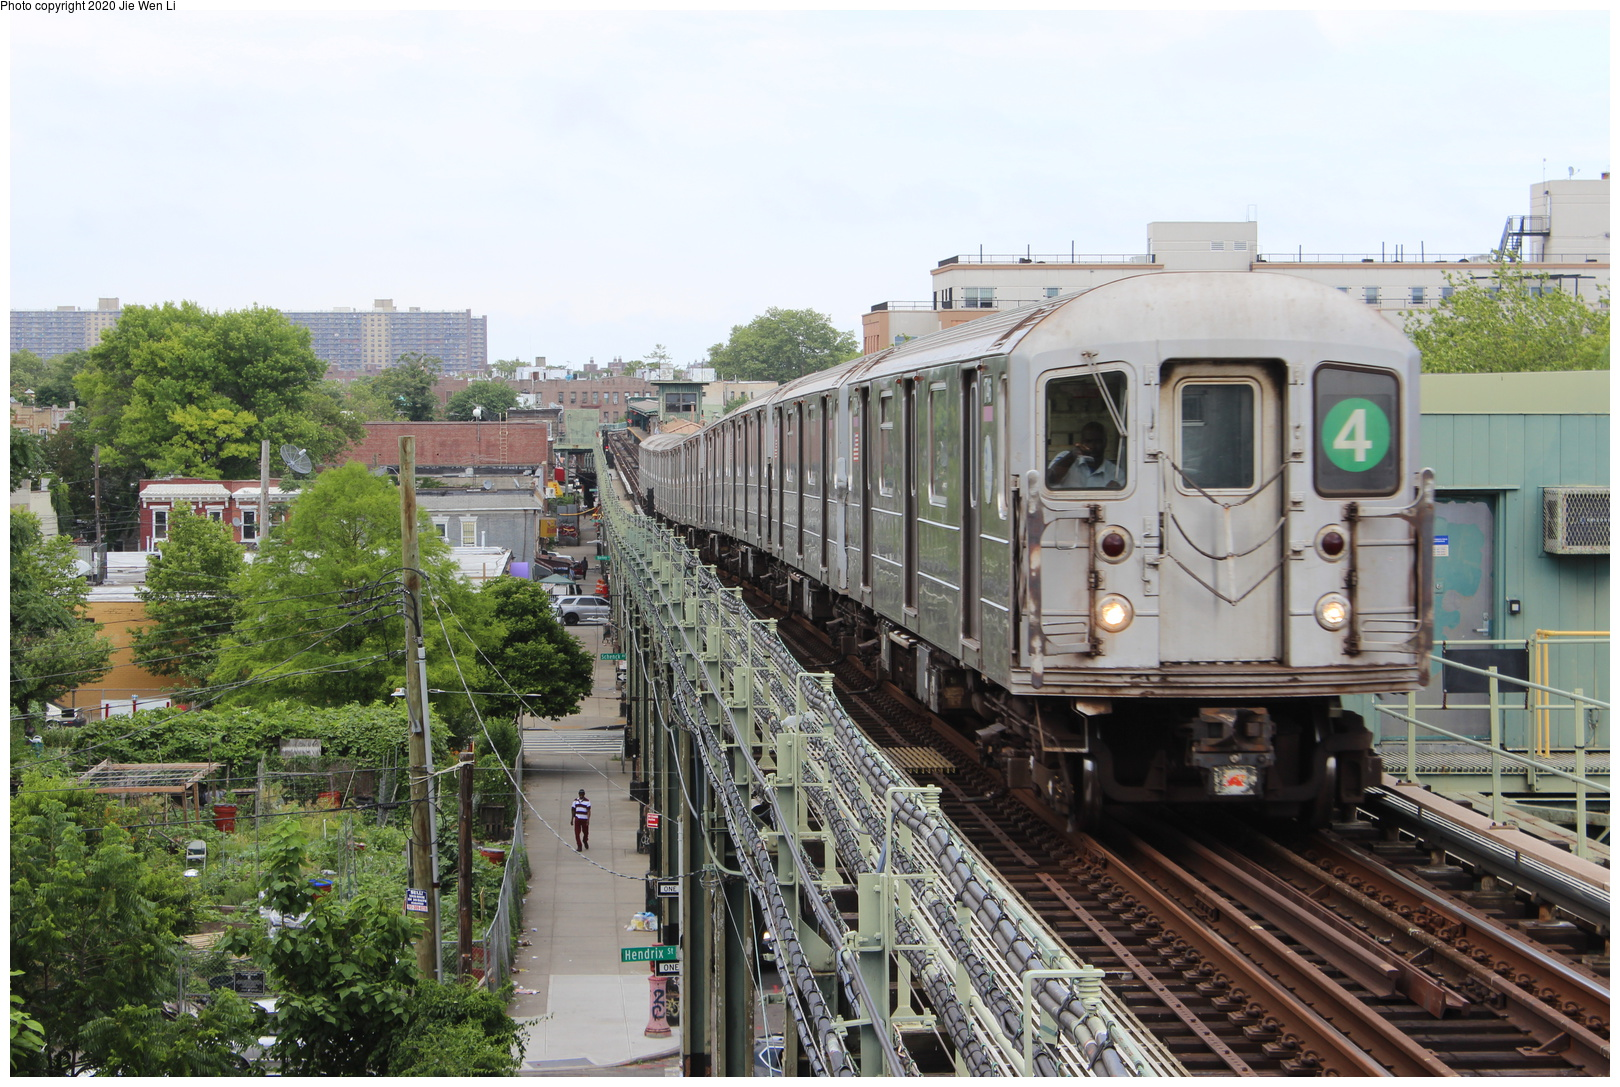 (267k, 1044x726)<br><b>Country:</b> United States<br><b>City:</b> New York<br><b>System:</b> New York City Transit<br><b>Line:</b> BMT Myrtle Avenue Line<br><b>Location:</b> Metropolitan Avenue <br><b>Car:</b> BMT Multi  <br><b>Photo by:</b> Joel Shanus<br><b>Viewed (this week/total):</b> 3 / 2064